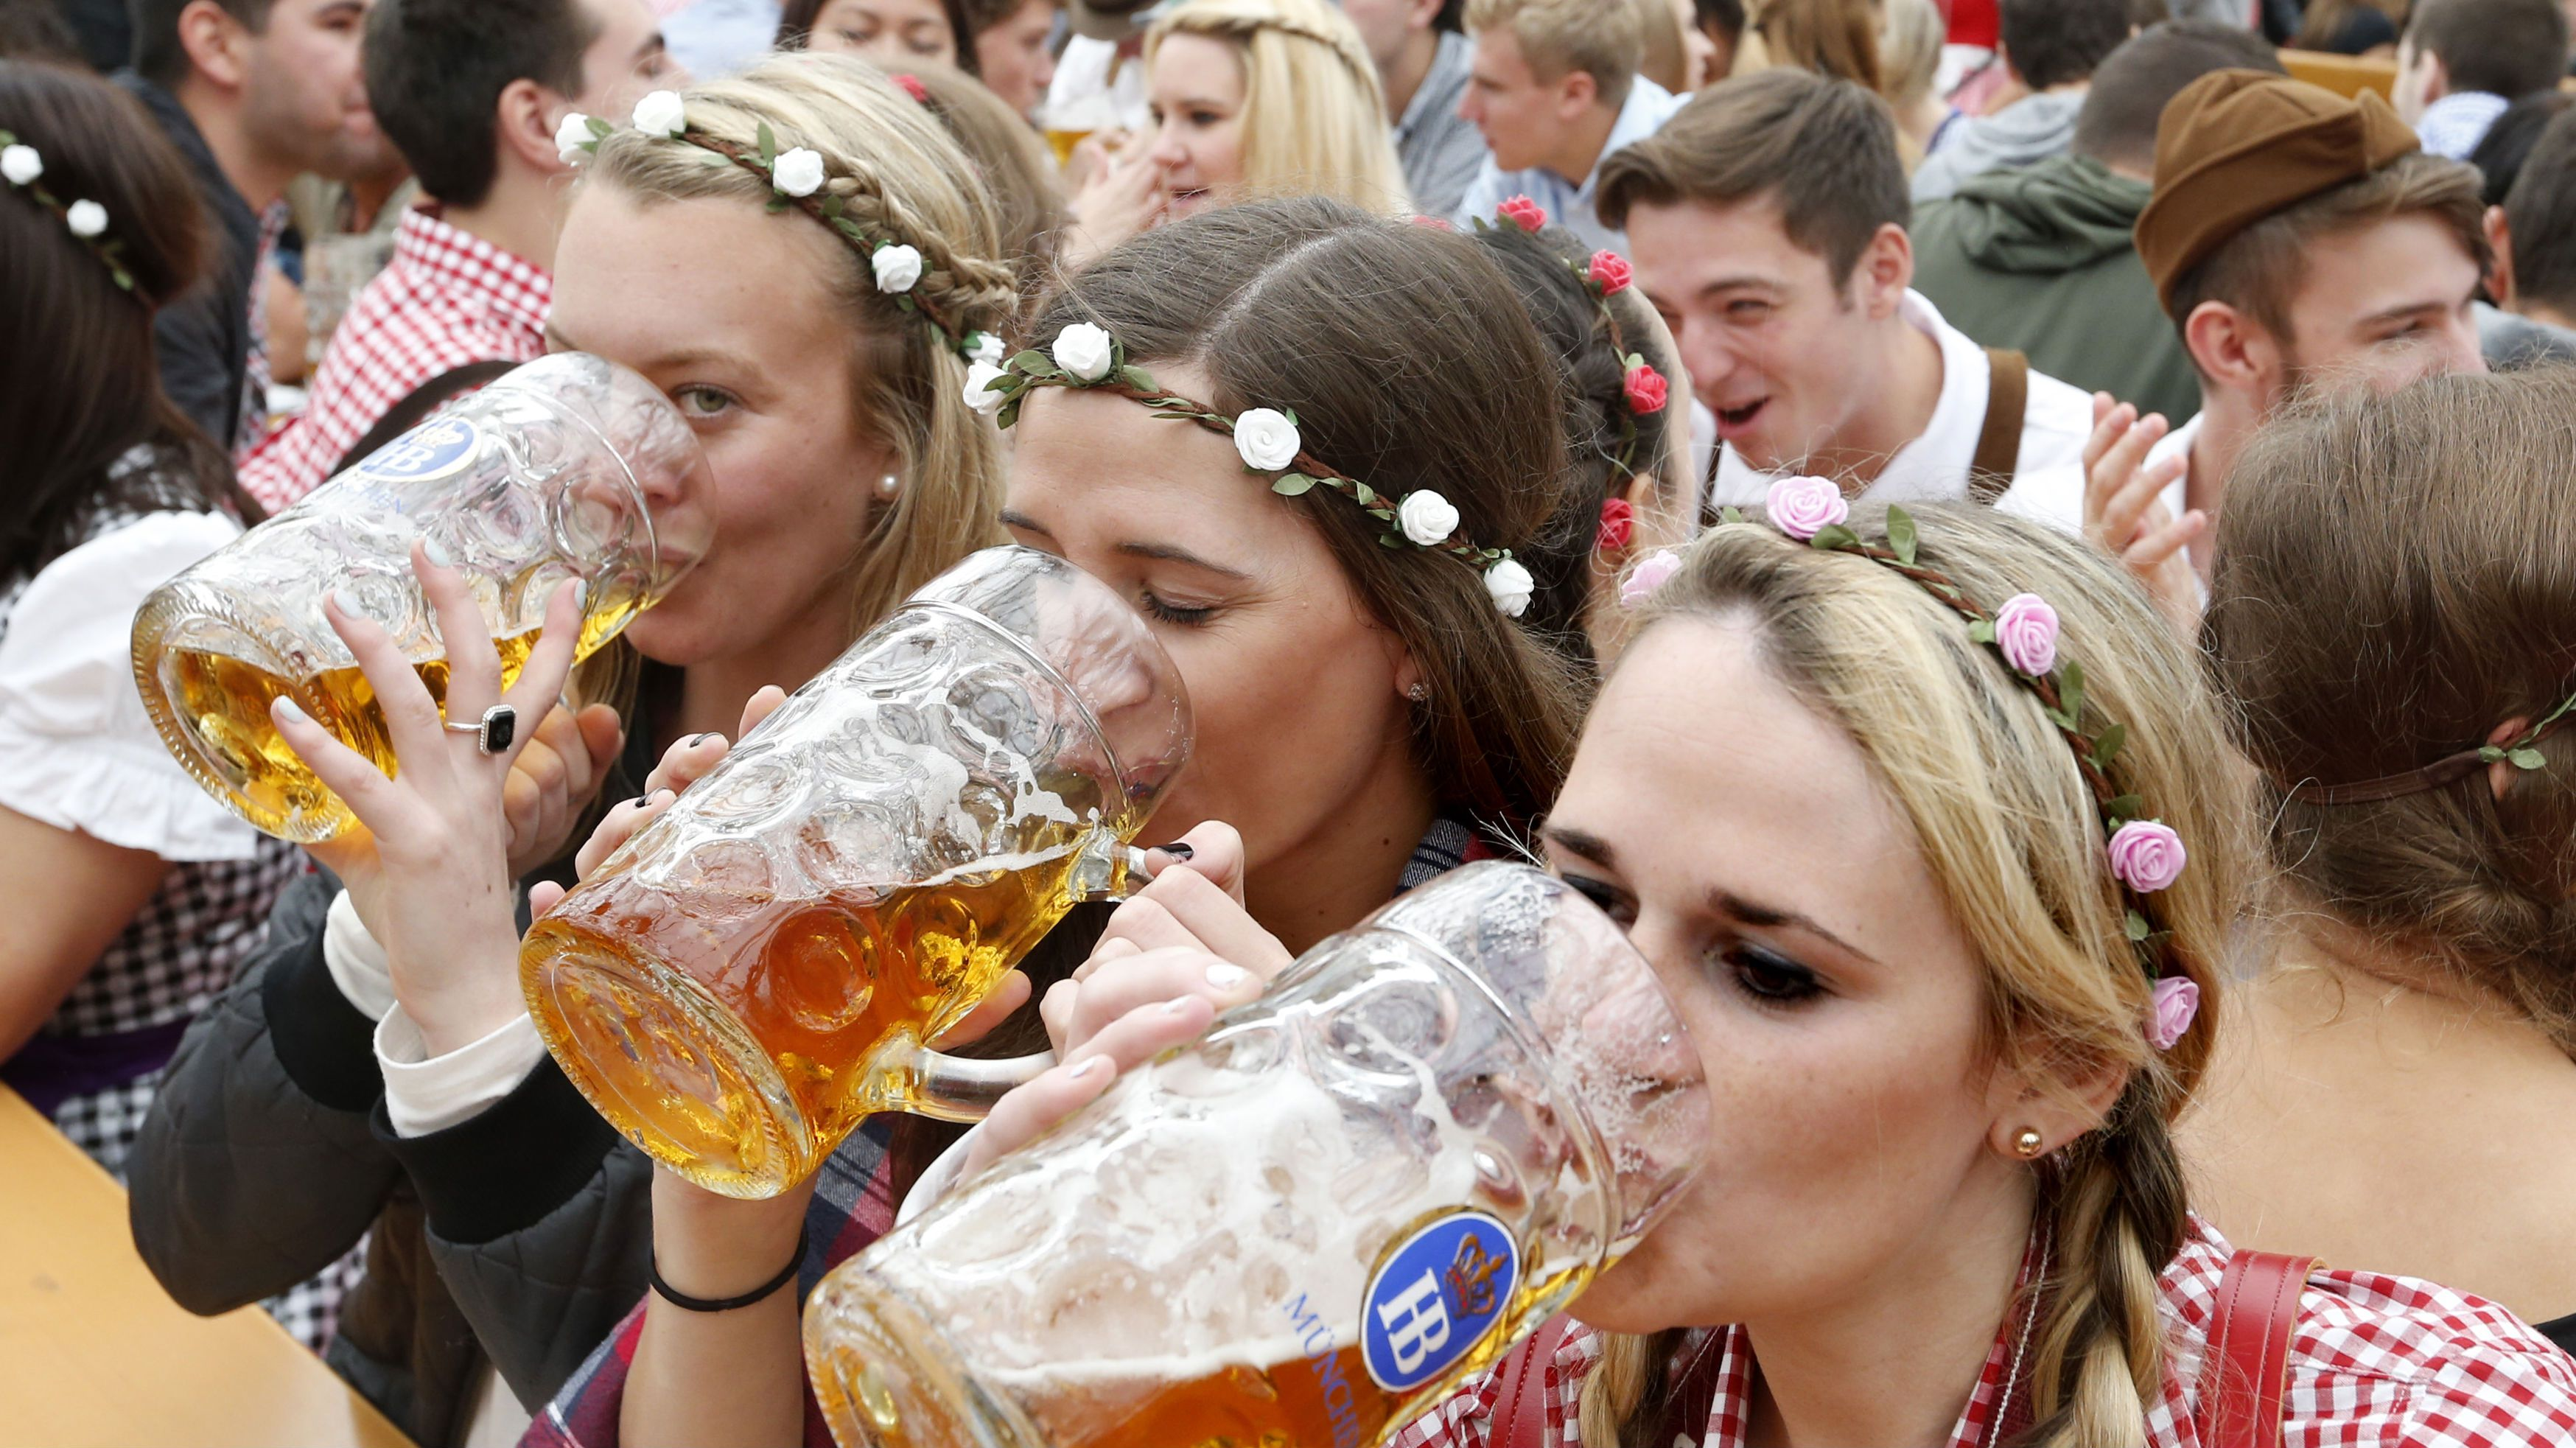 Visitors enjoy beer during their visit to the 181st Oktoberfest in Munich September 28, 2014. Millions of beer drinkers from around the world will come to the Bavarian capital for the Oktoberfest, which runs until October 5.